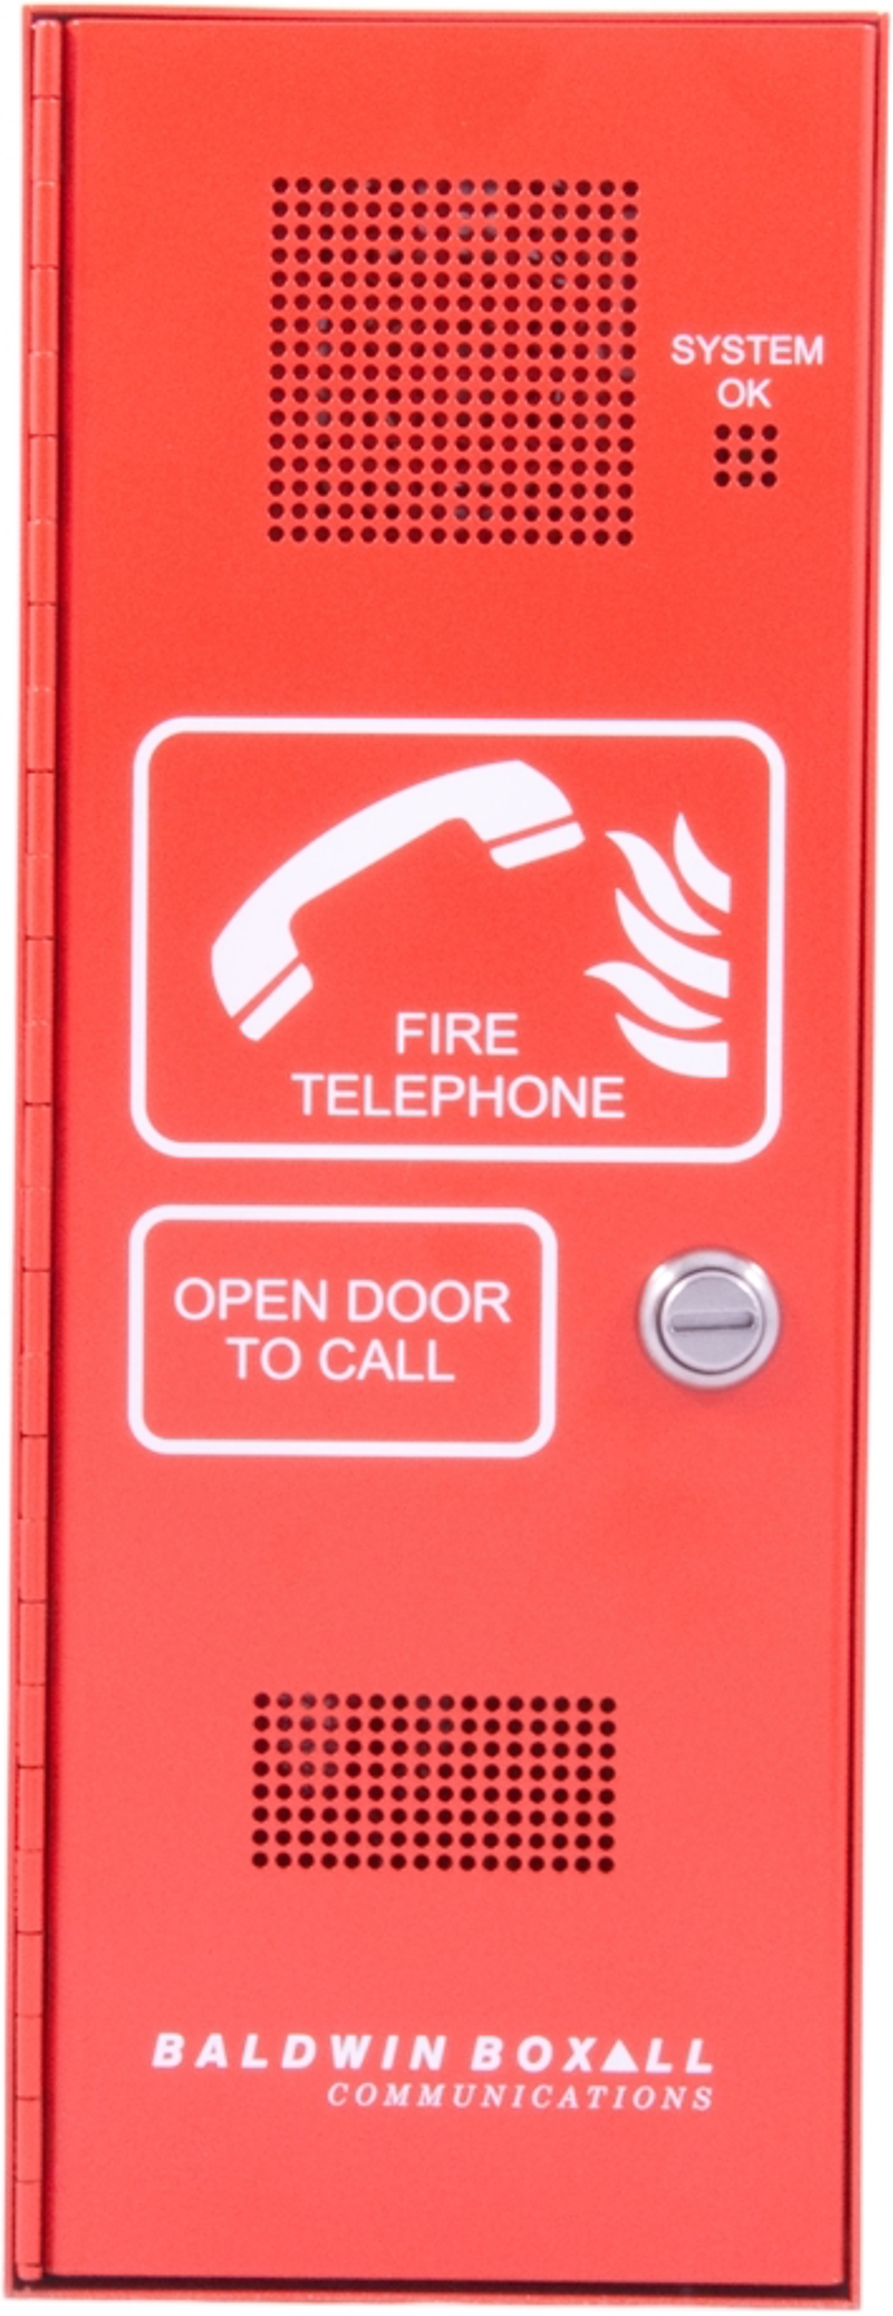 Baldwin Boxall OmniCare BVOCFL Type-A Fire Telephone with Locking Door Red